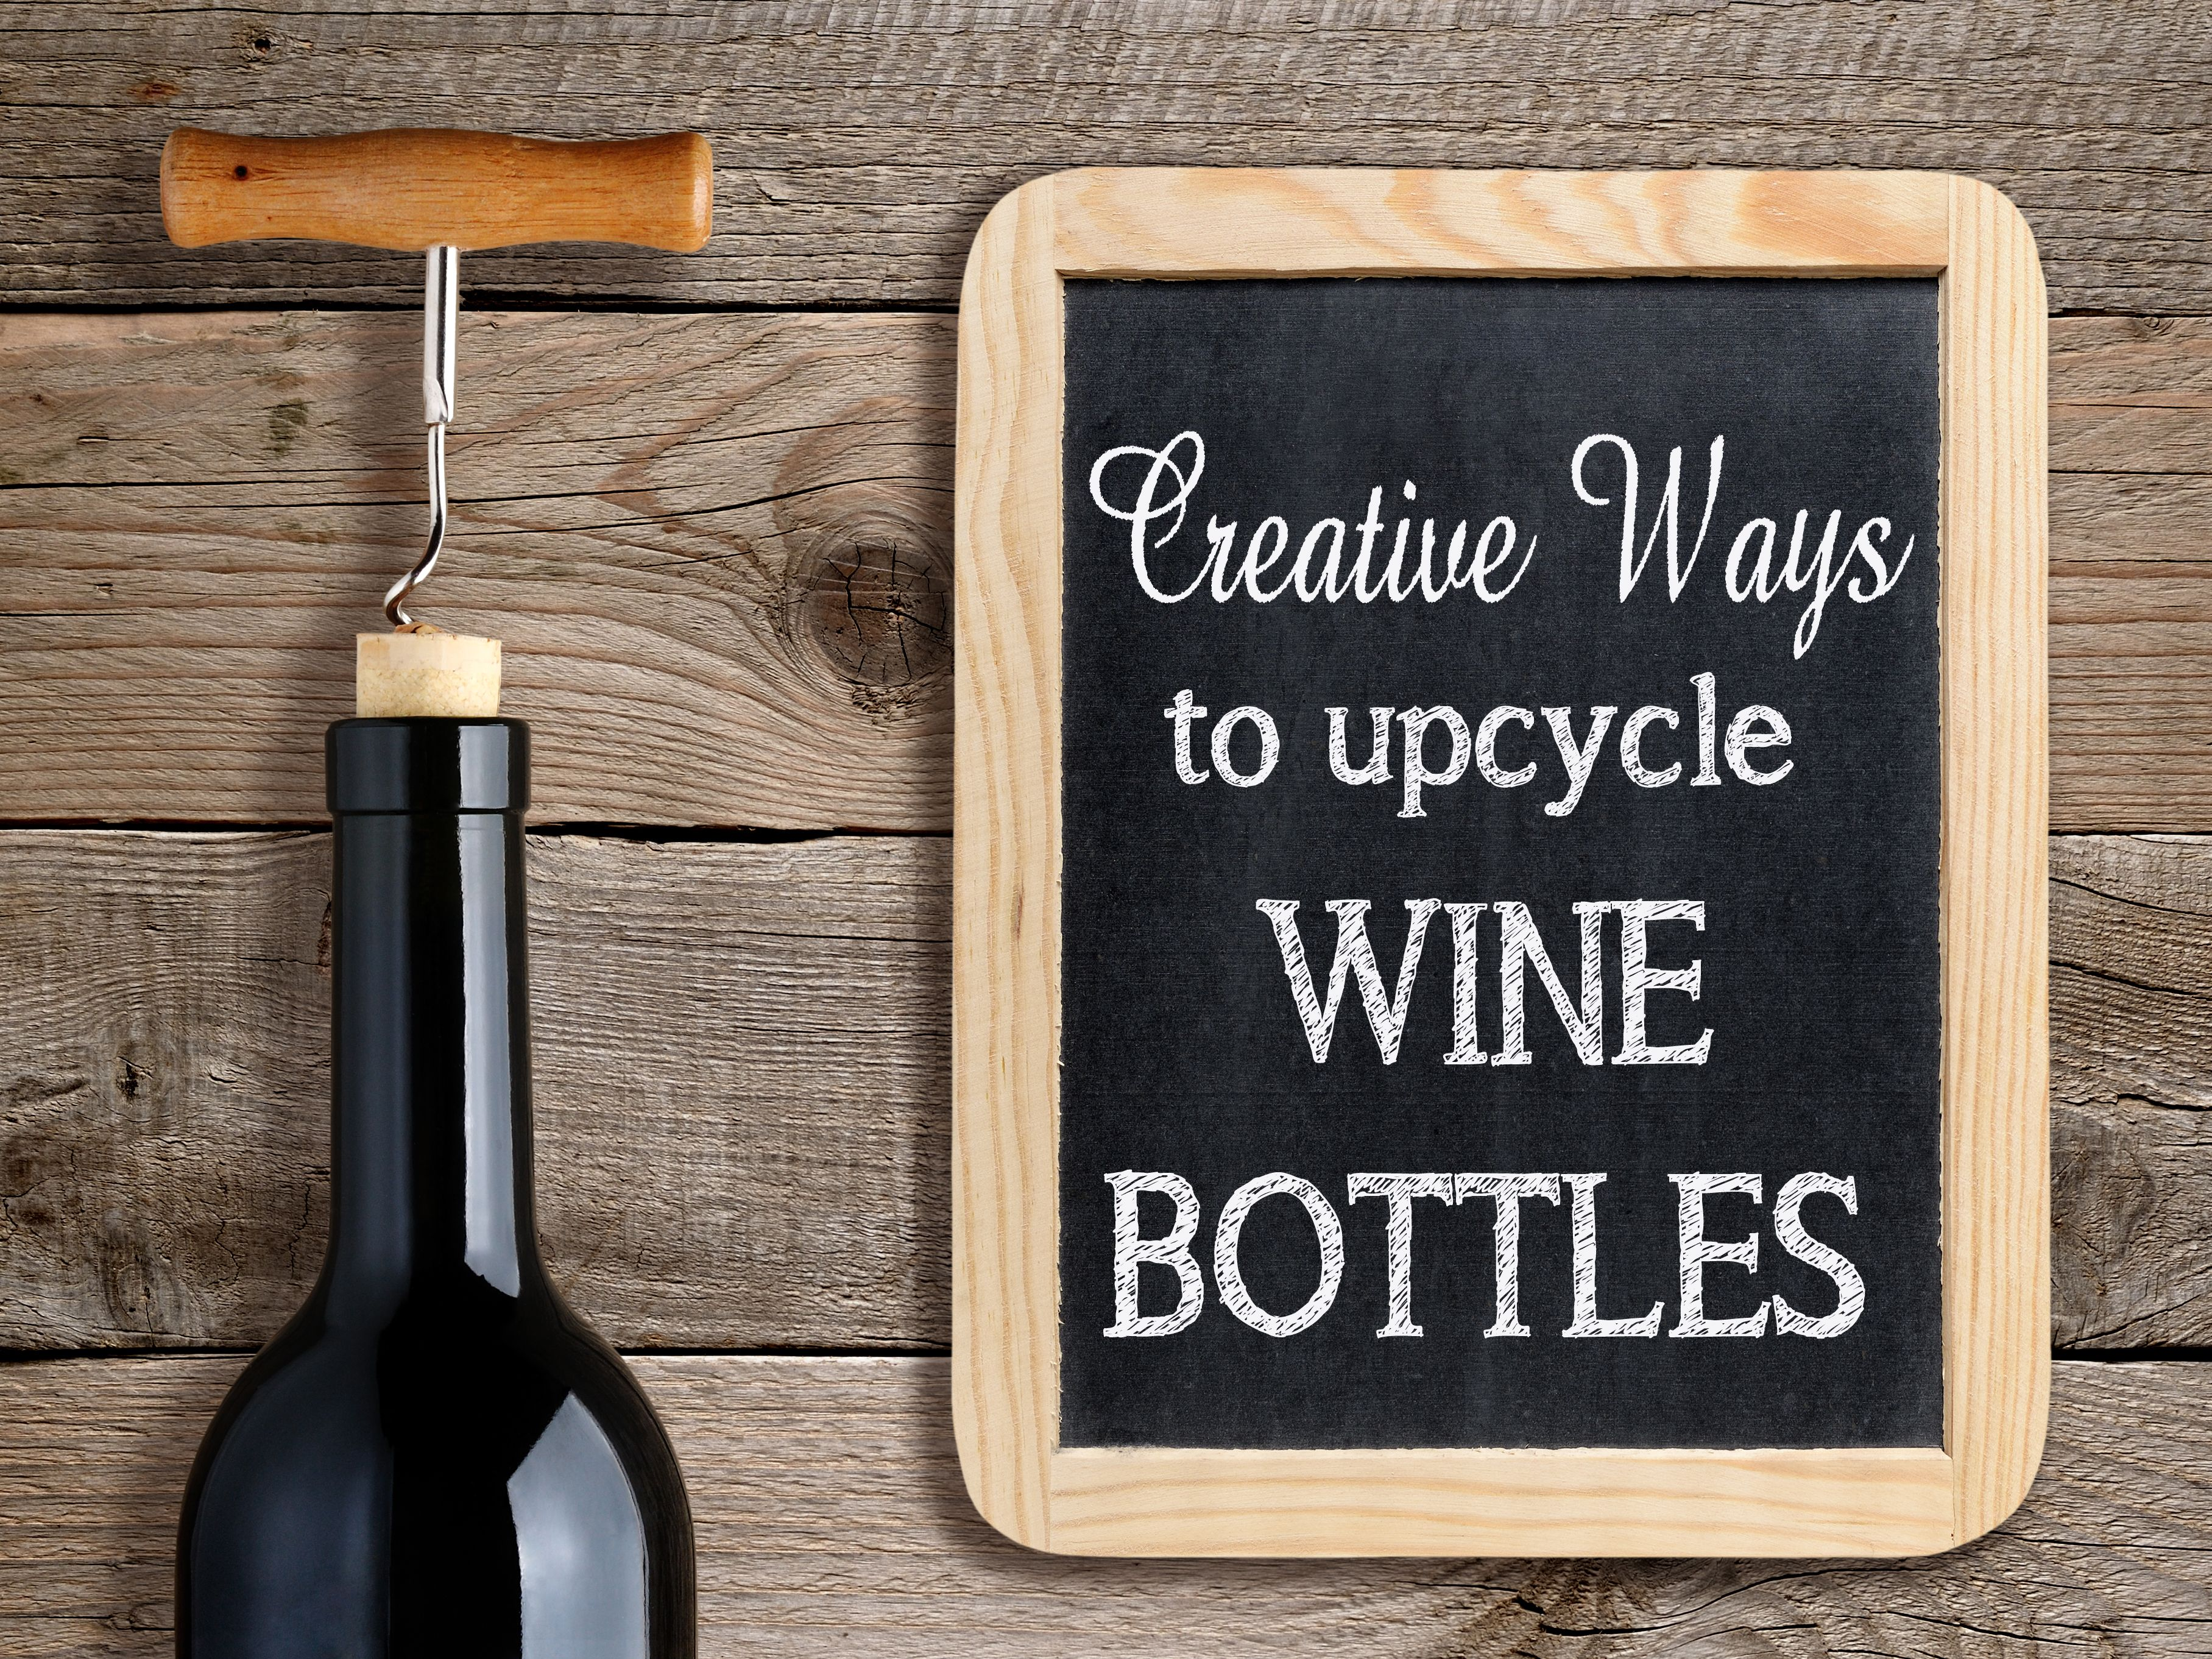 Creative Ways to Upcycle Recycle Wine Bottles Reuse Wine Bottle